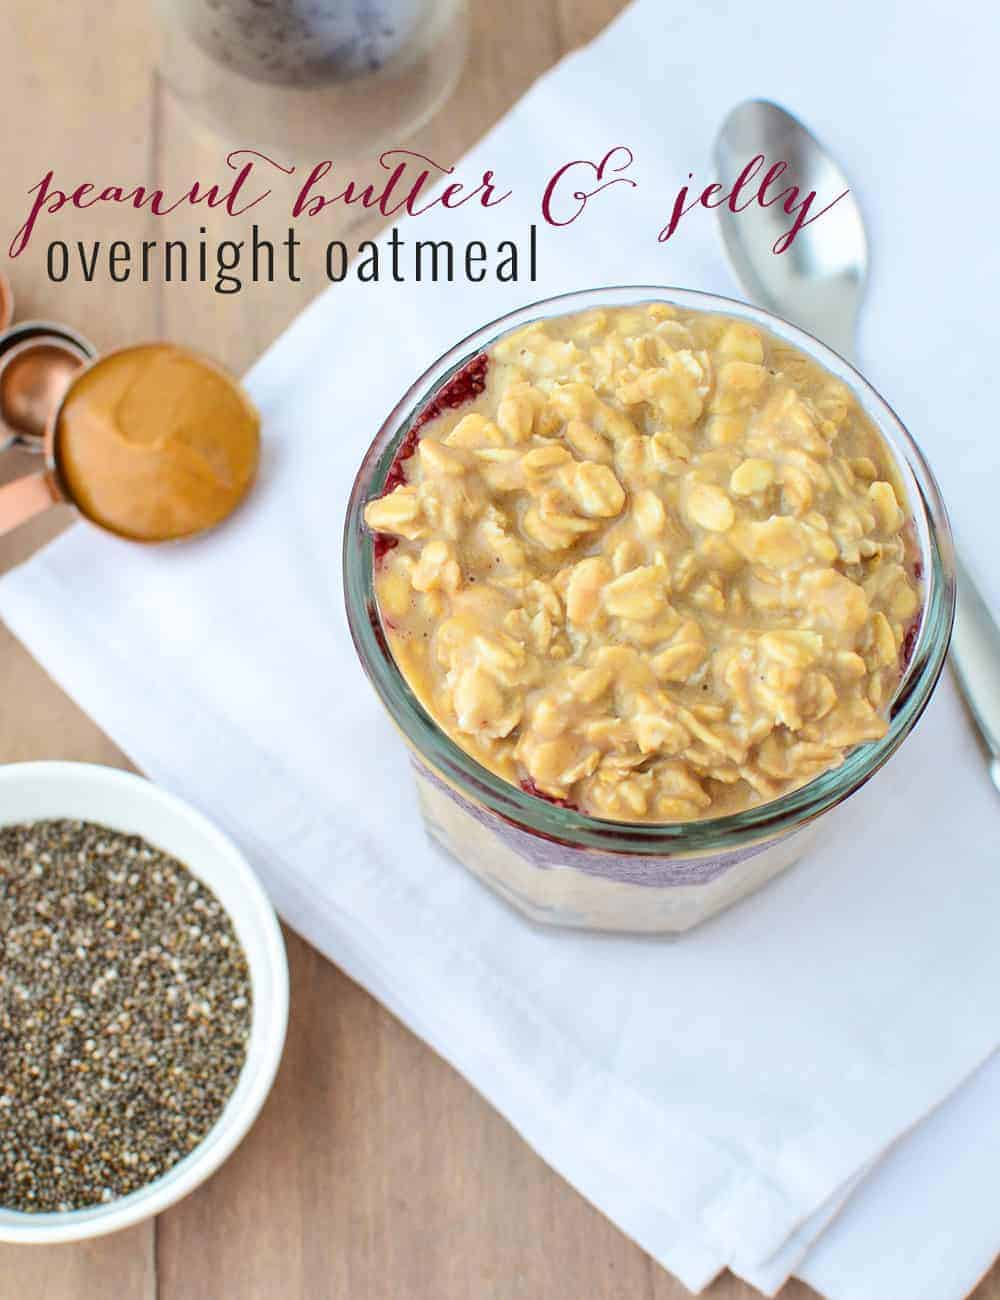 PB and J Overnight Oats! Whipped peanut butter and banana oats layered with grape chia filling! A heart healthy breakfast filled with soluble fiber and omega-3 fatty acids. | www.delishknowledge.com